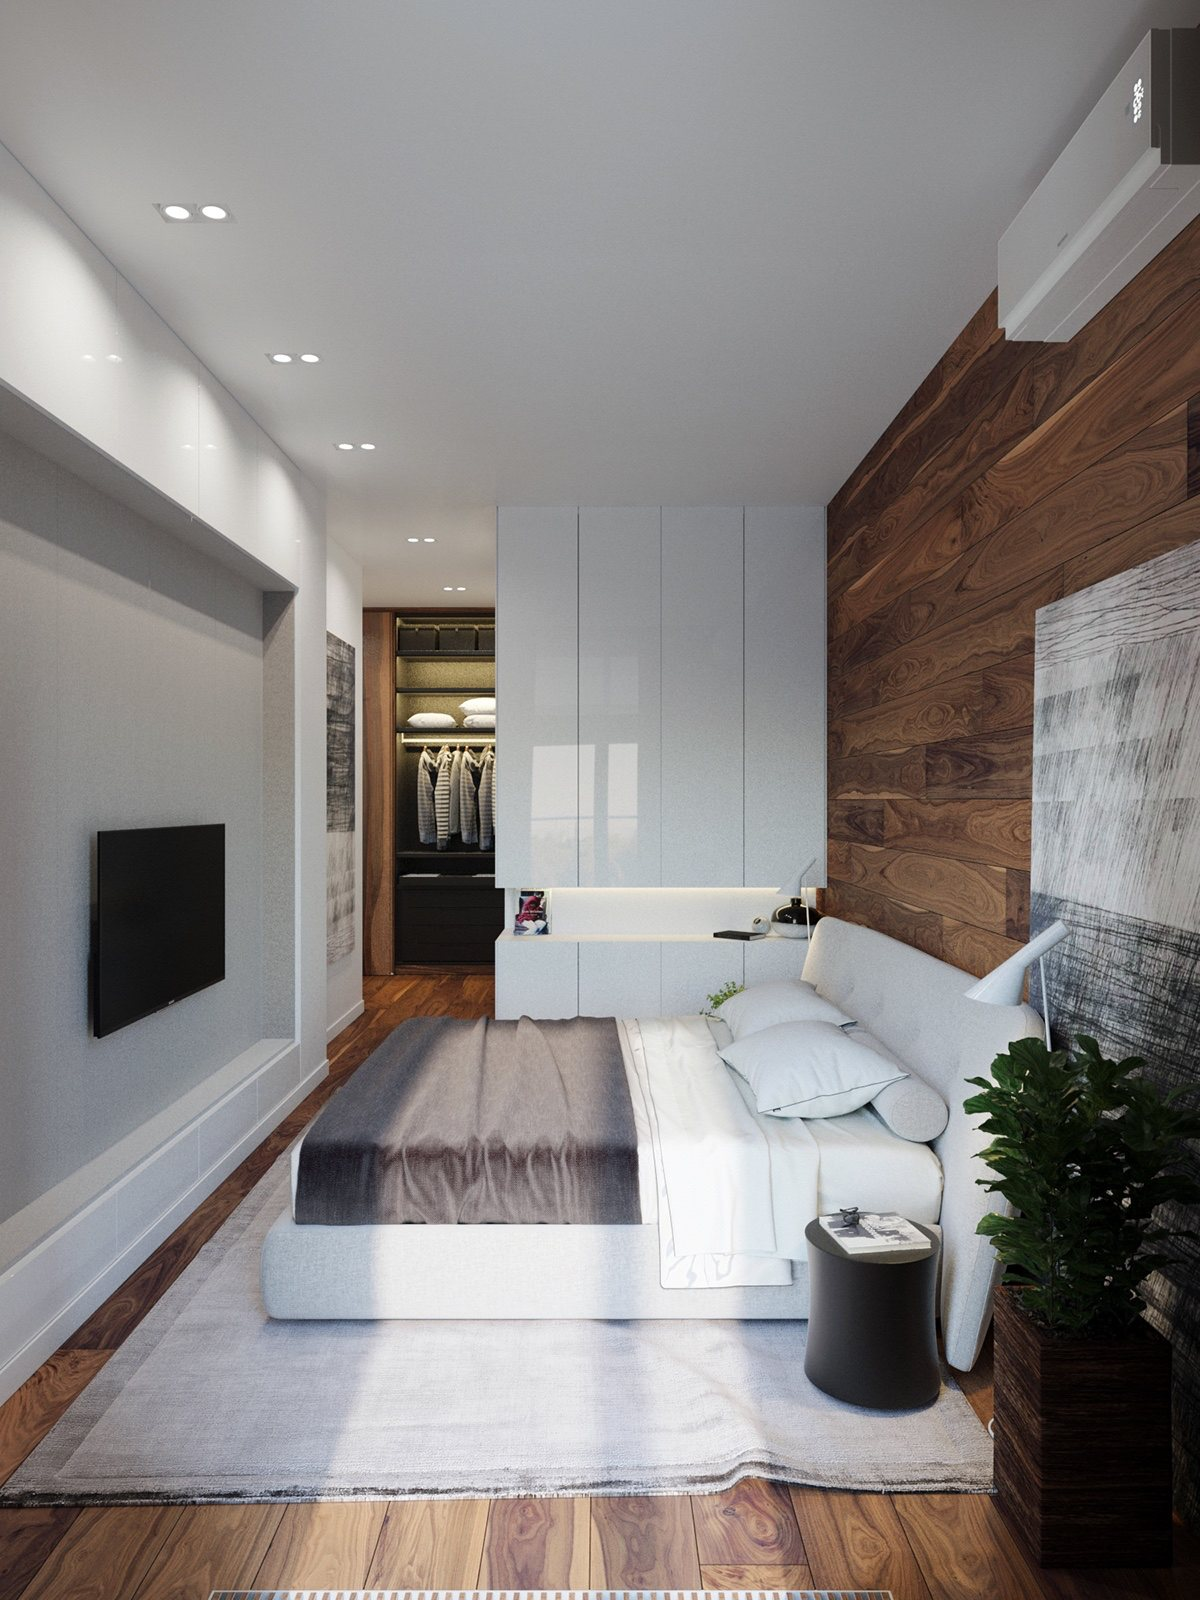 Rustic beauty in an inner city apartment Best feature walls